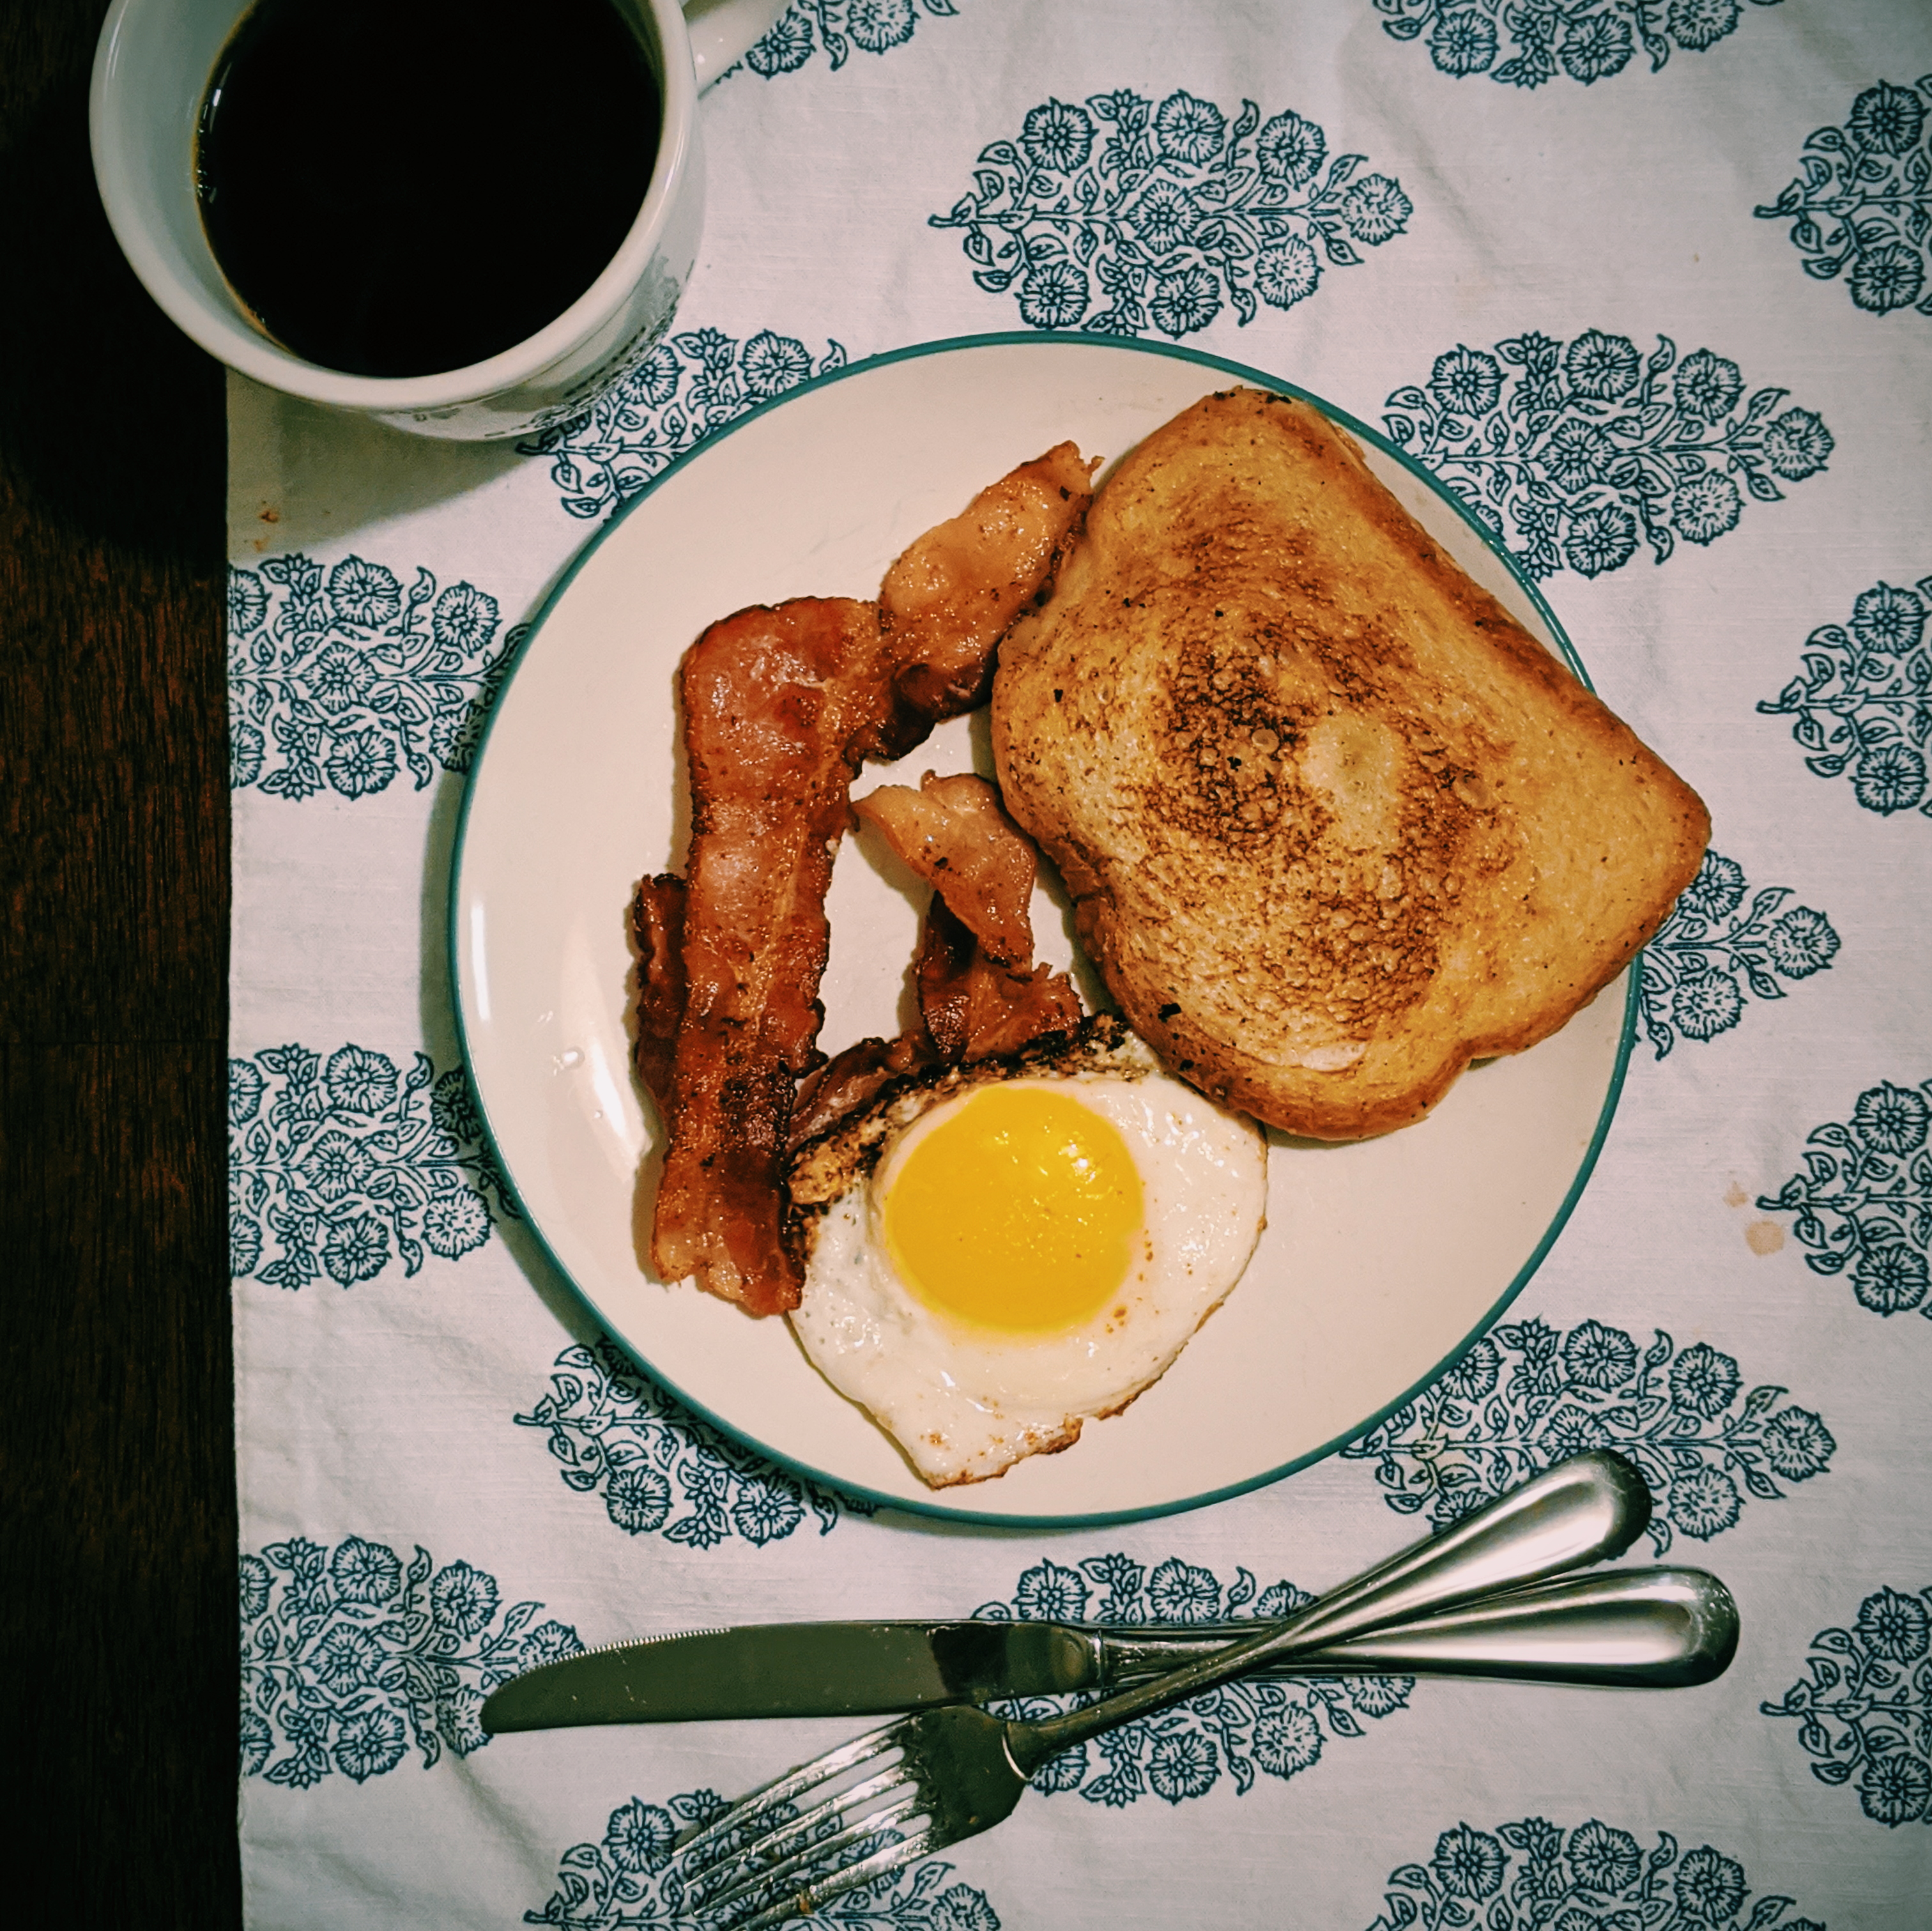 Bacon, egg, and fried bread with a black coffee